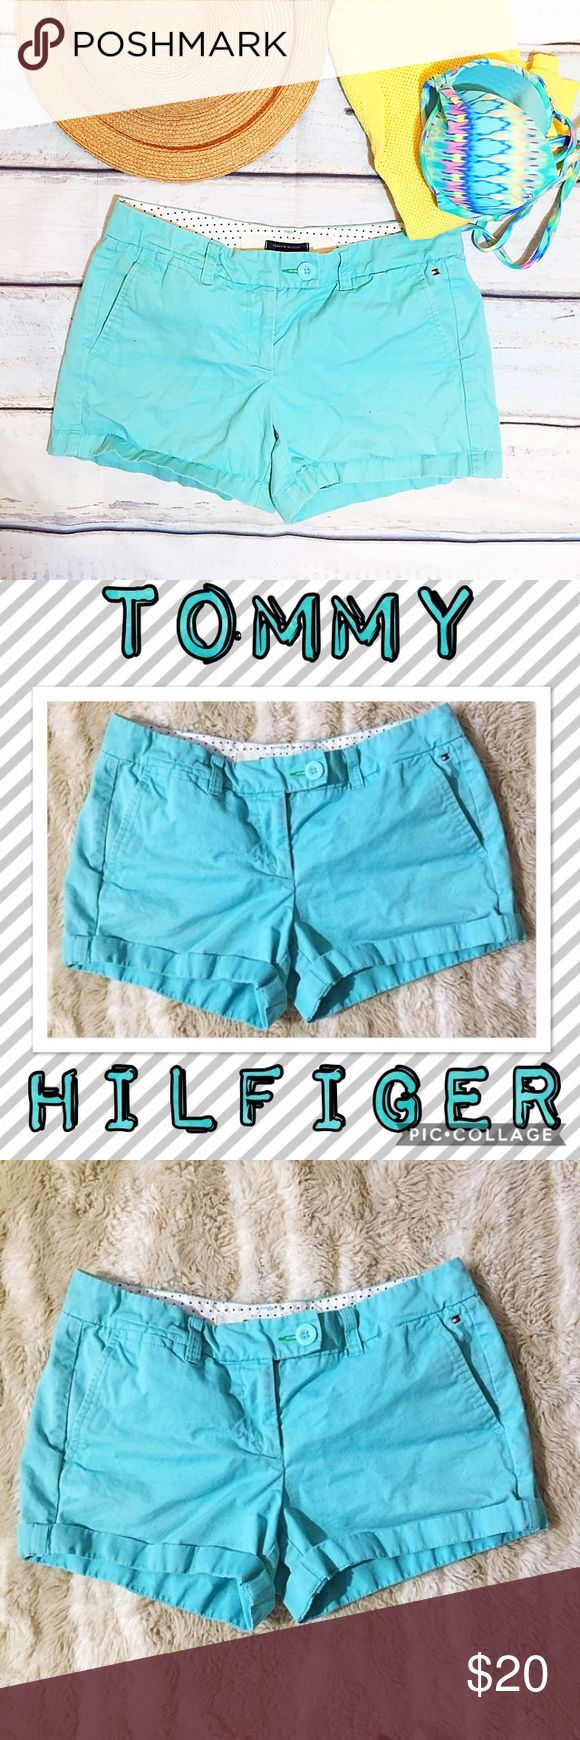 """Tommy Hilfiger Turquoise Shorts Tommy Hilfiger turquoise Shorts. Size 6. Great pop of color for spring and summer. Measures 16"""" flat at waist, 8"""" front rise, and 4"""" inseam.  #tommyhilfiger #turquoise #teal #aqua #shorts #chino #classic #chic #preppy #punkydoodle  No modeling Smoke free home I do discount bundles Tommy Hilfiger Shorts"""